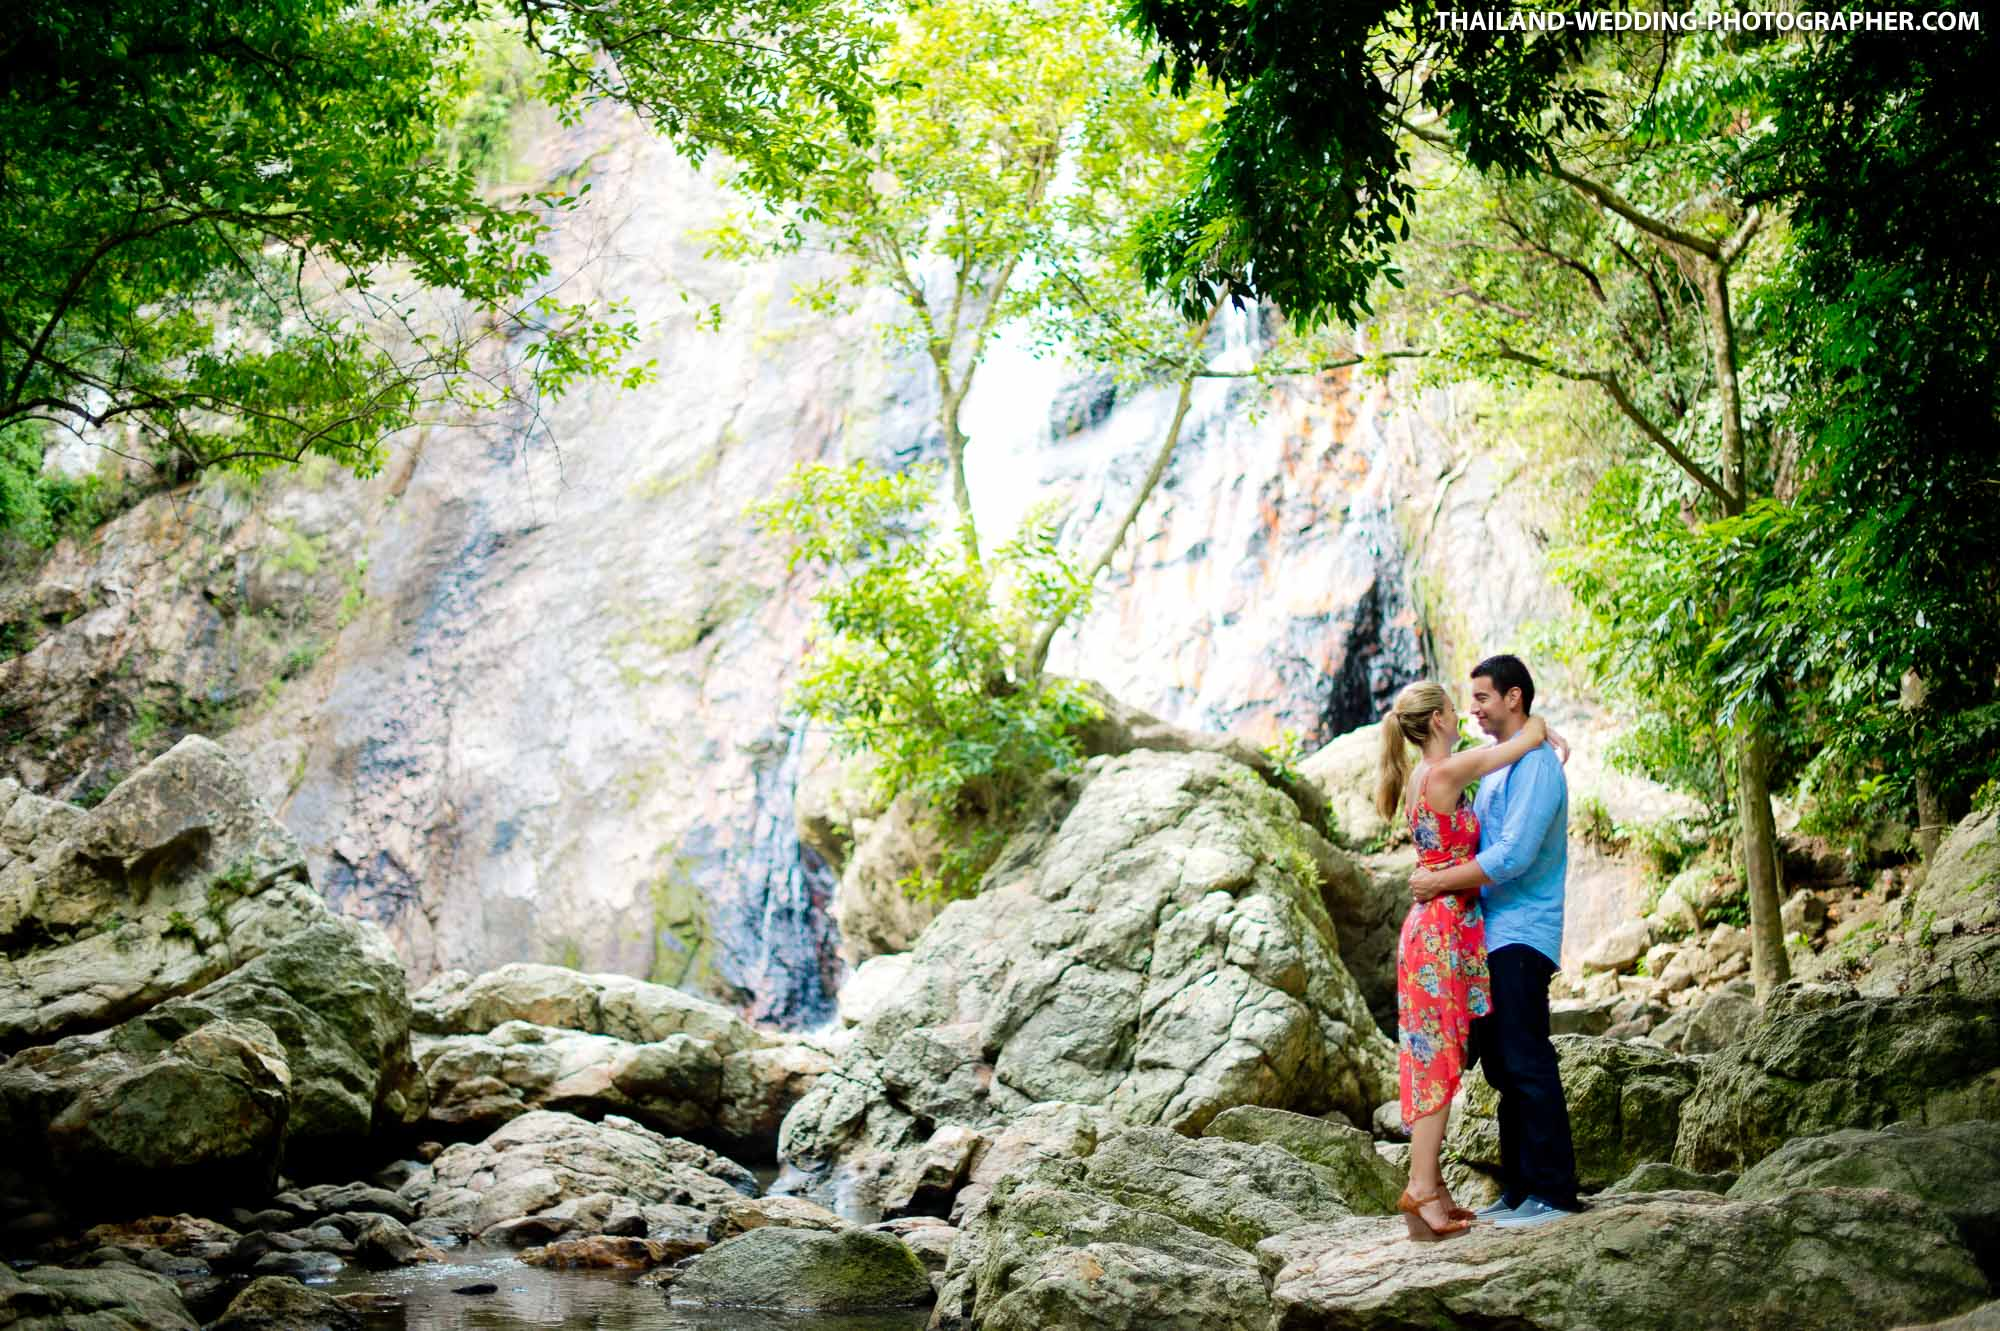 Lamai Waterfall Koh Samui Wedding Photography